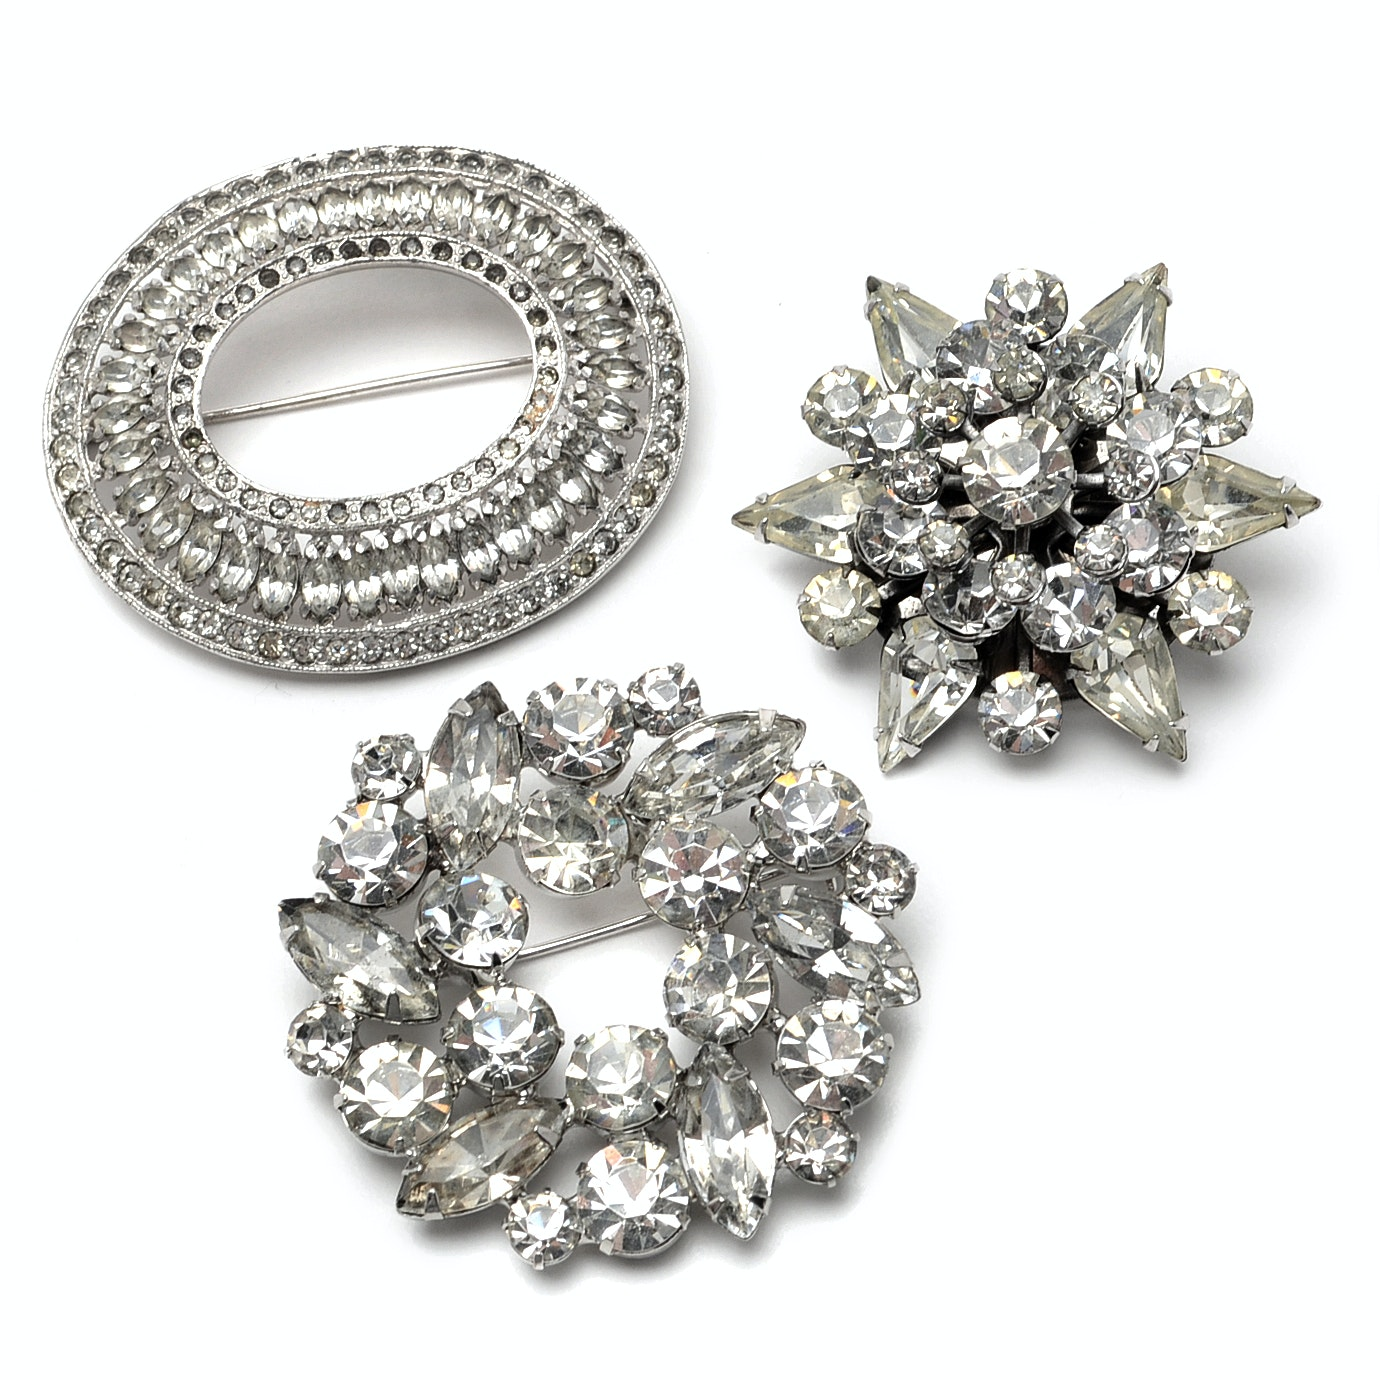 Three Silver-Tone Rhinestone Costume Brooches Including Weiss